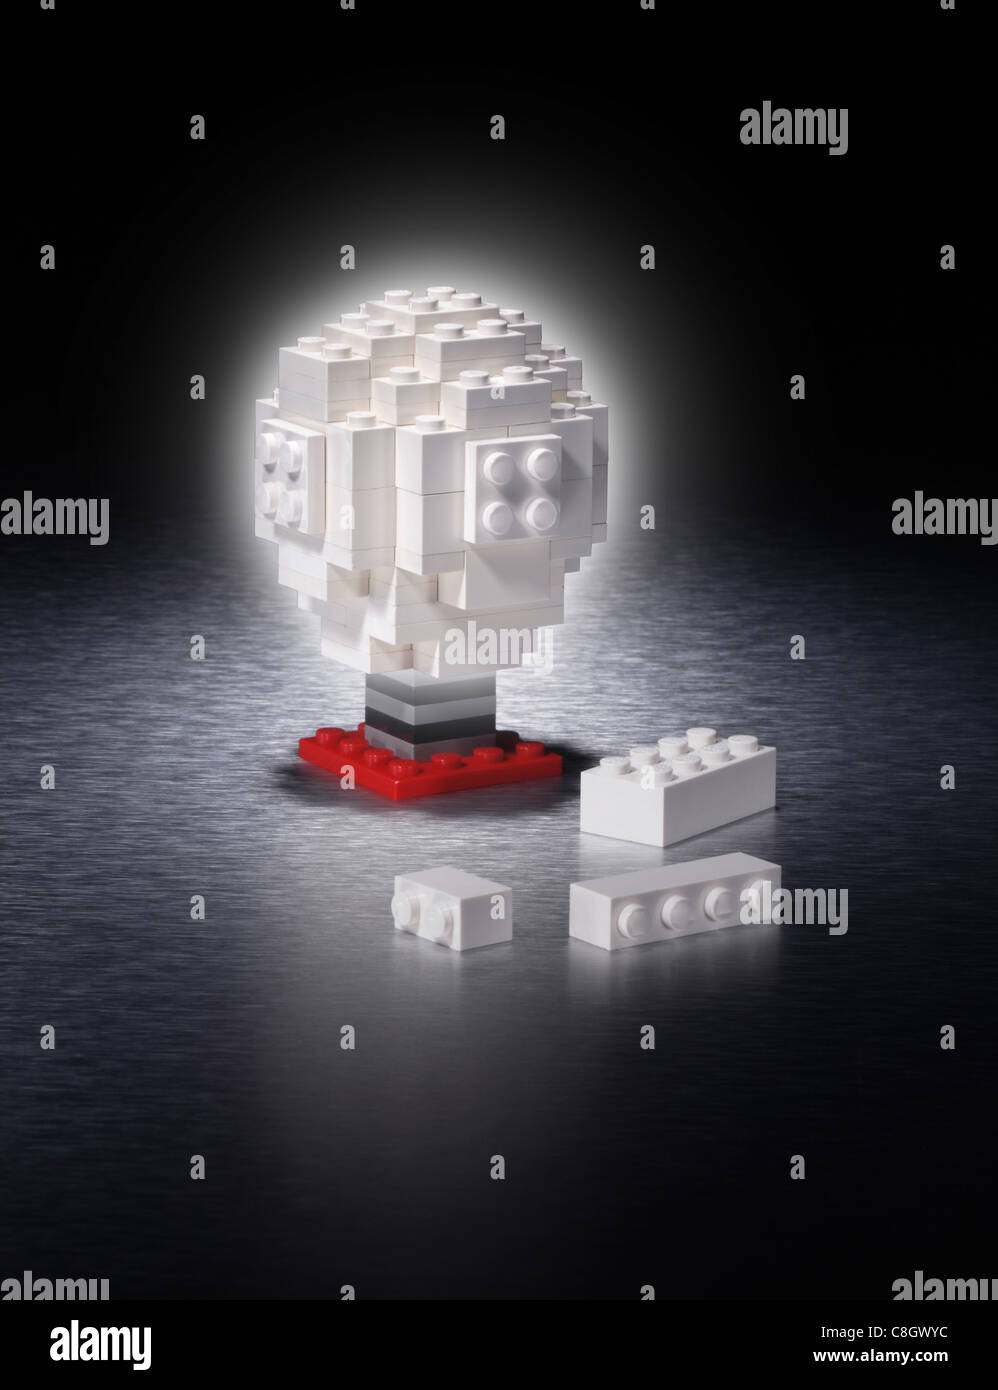 A light bulb made with many small plastic pieces - Stock Image